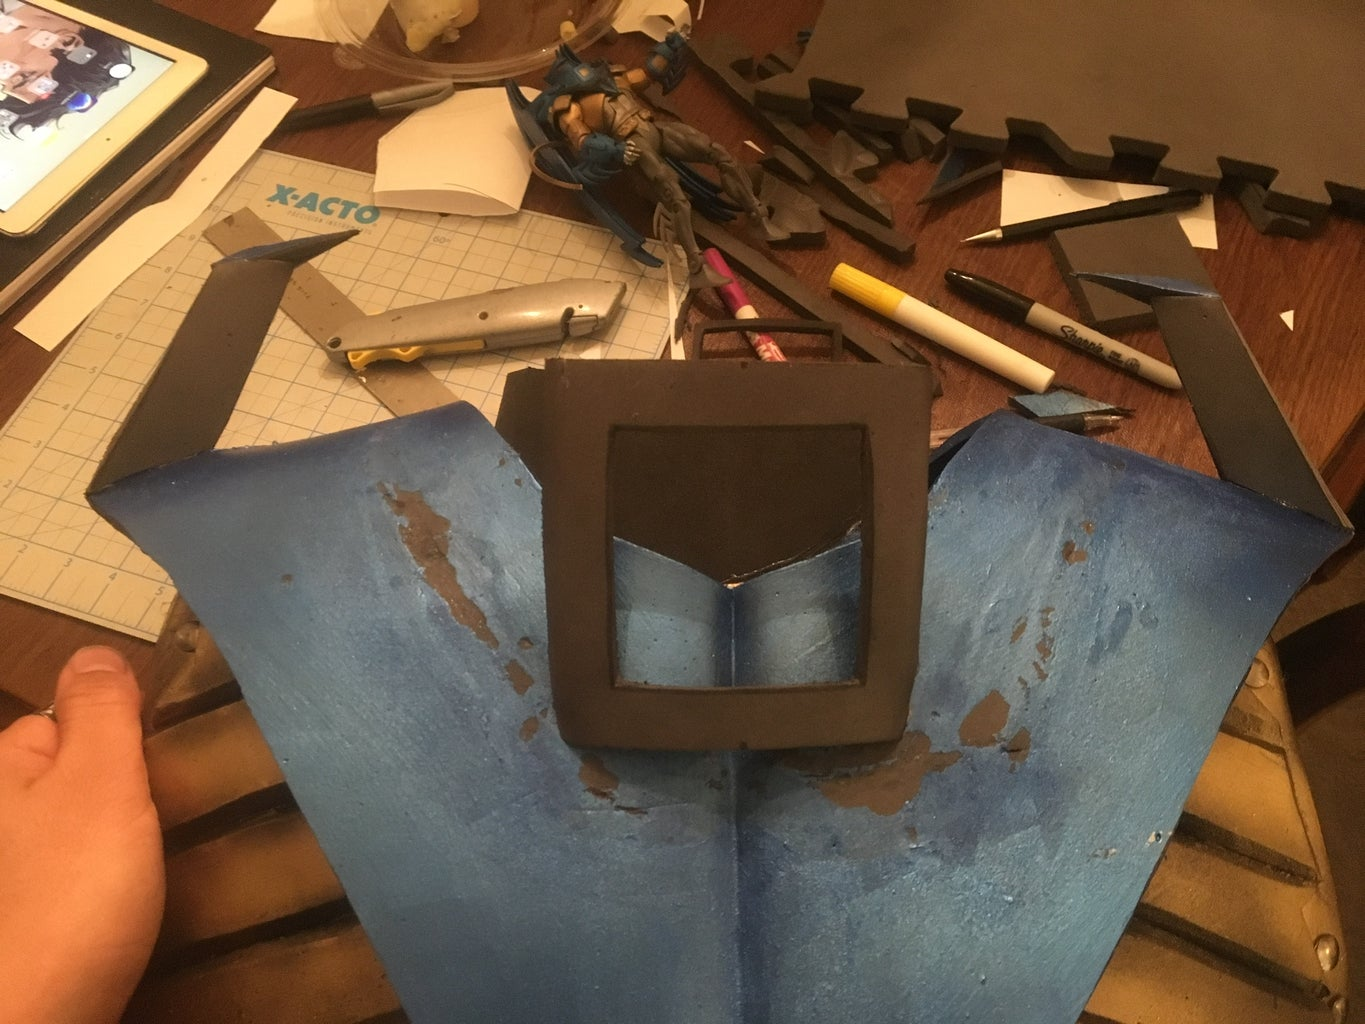 Chest Piece (part B), Fins, and Collar